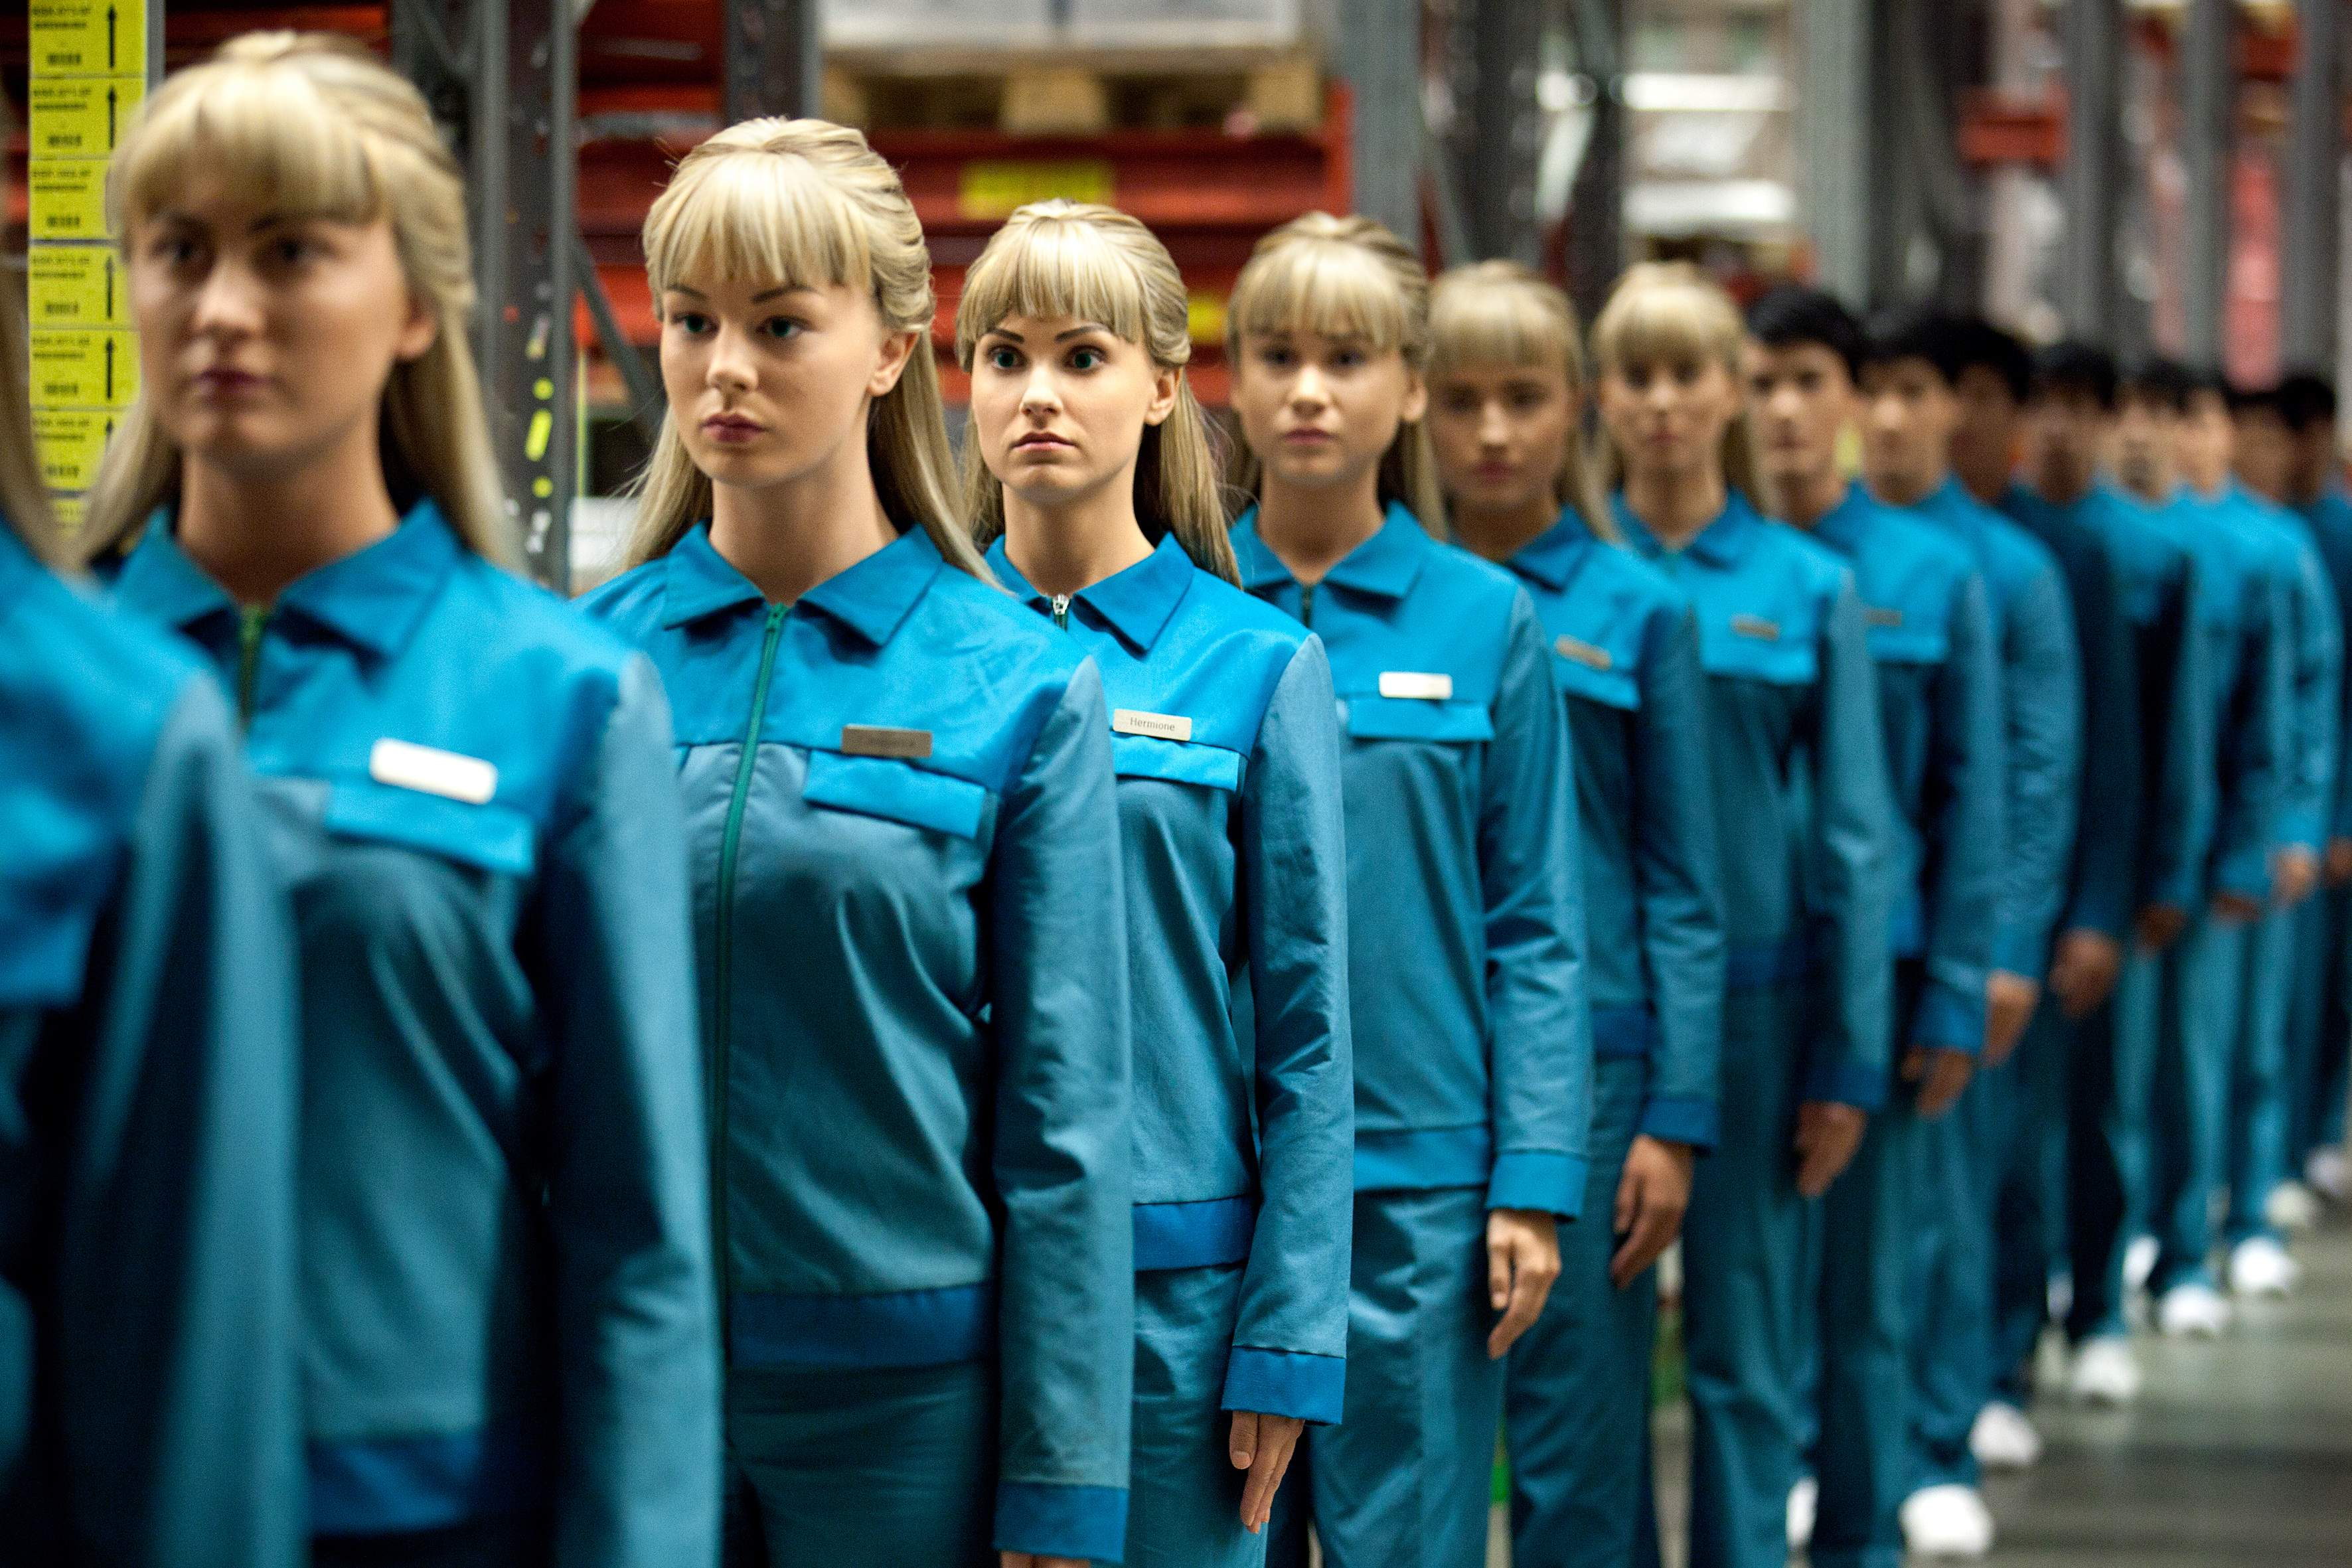 Production photo from the TV series Real Humans (Sweden 2012-2014)